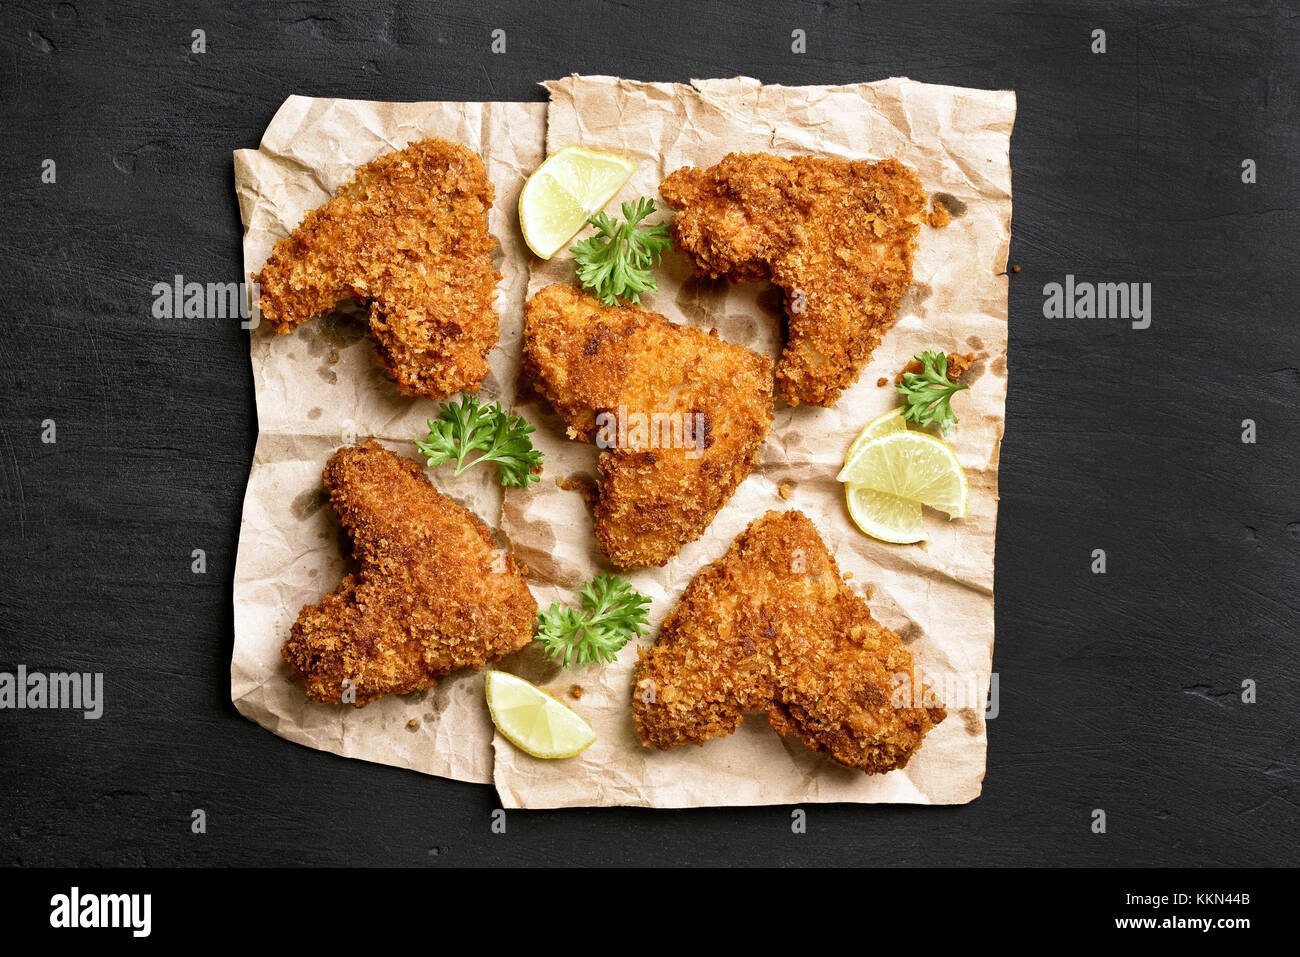 Spicy fried breaded chicken wings on paper over dark black background. Top view, flat lay - Stock Image